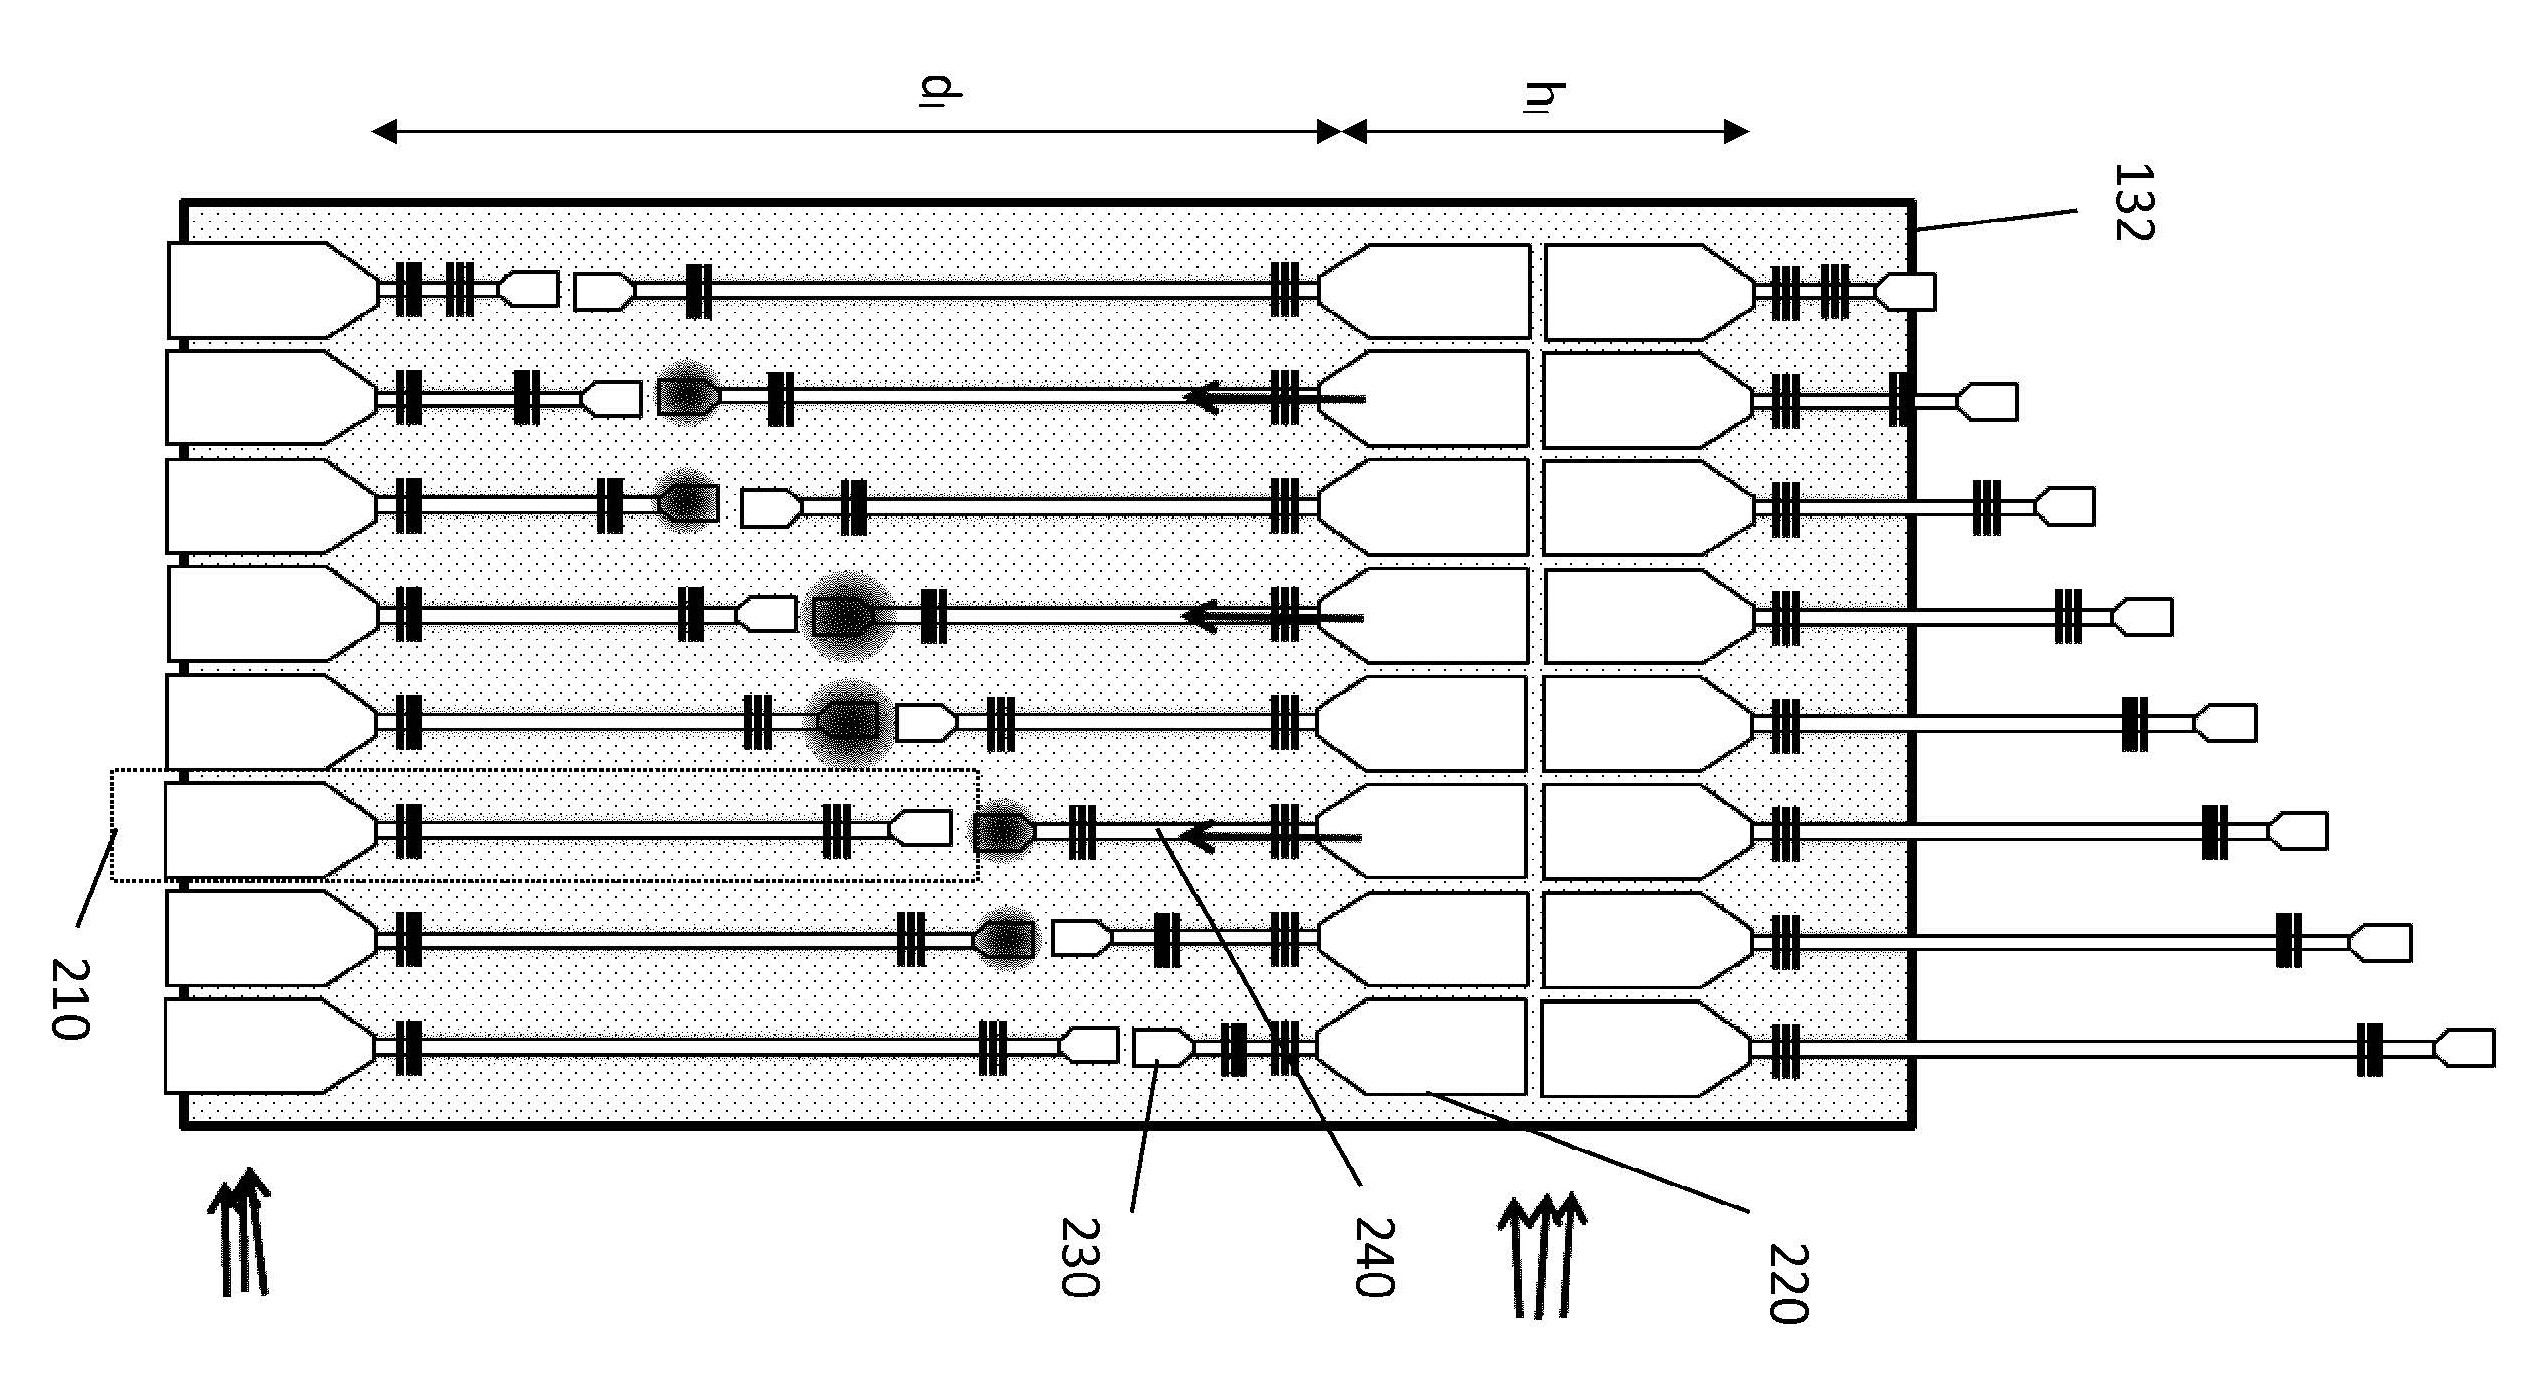 Design of the Raman spectrometer on chip.